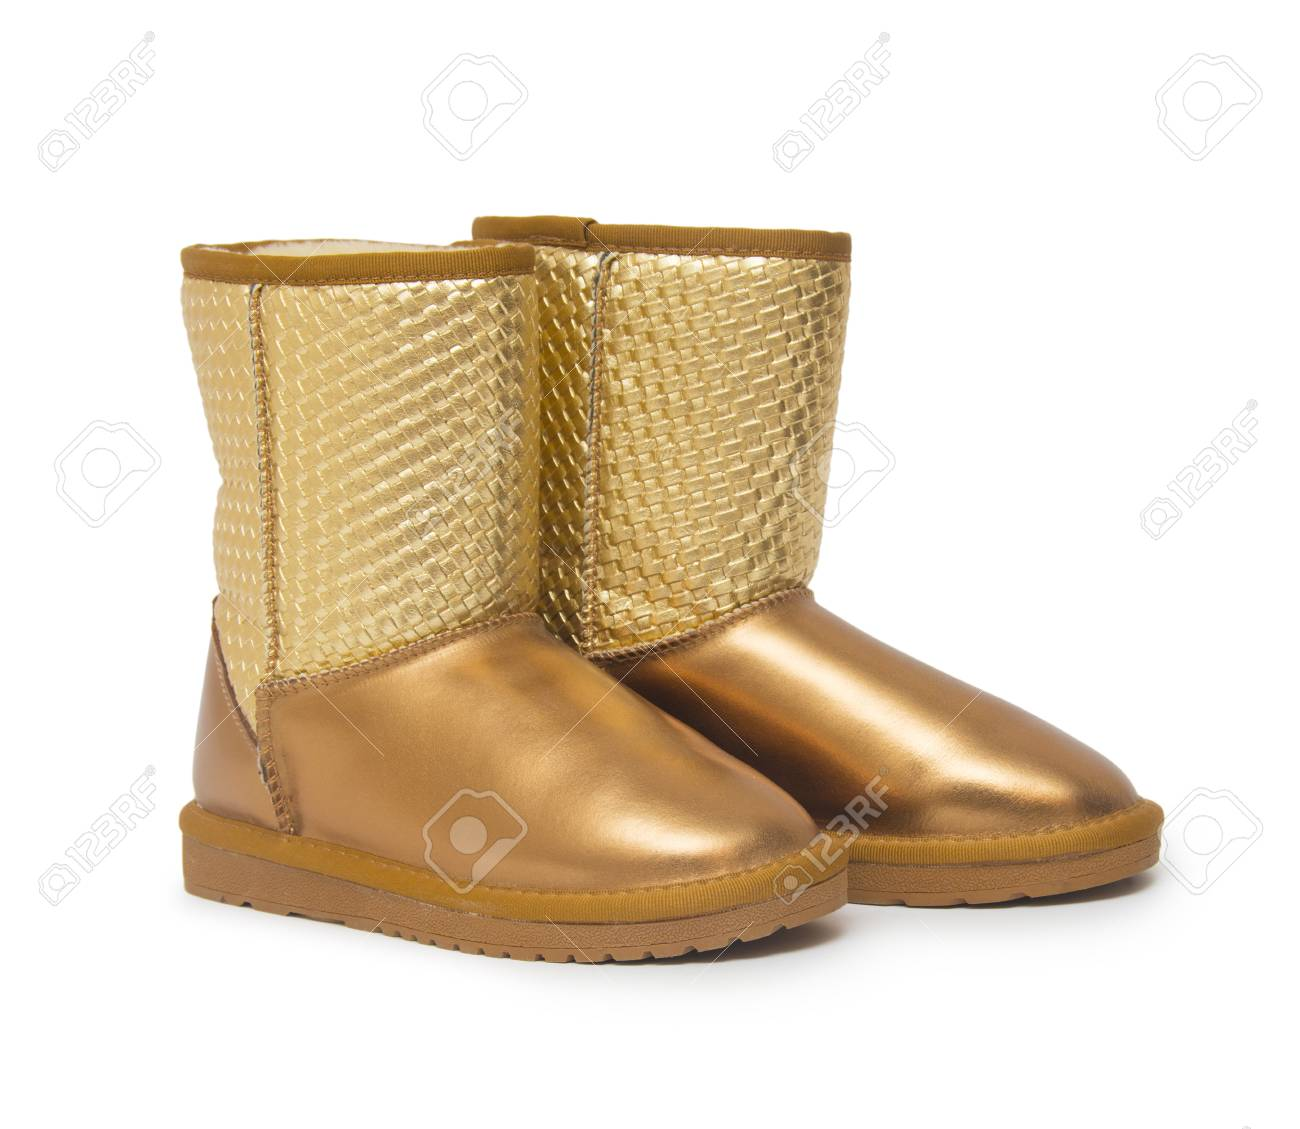 Stock Photo - Uggs - female Australian shoes